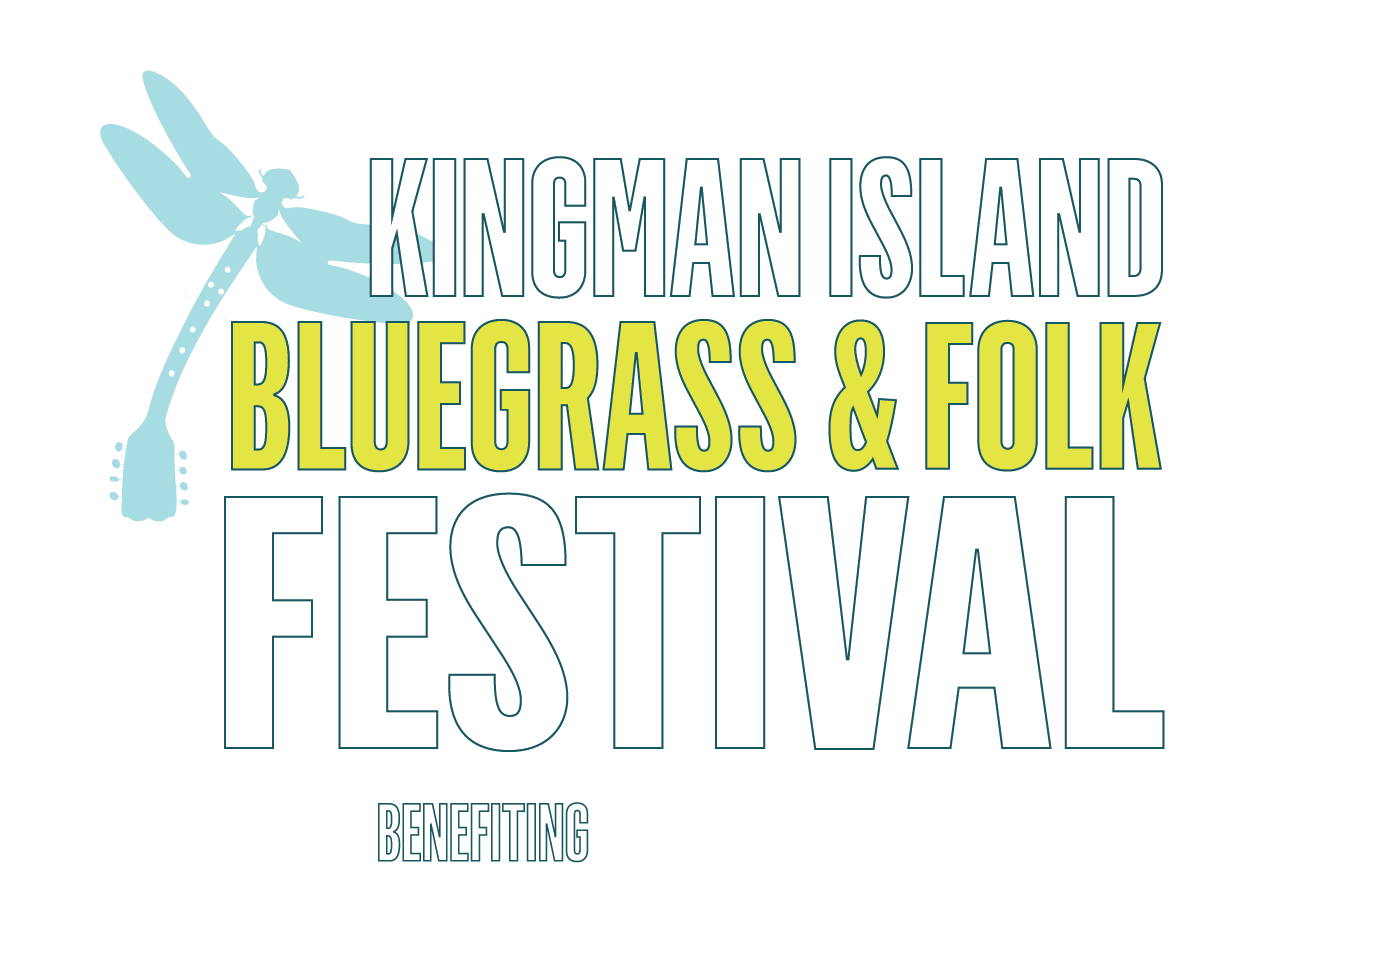 Kingman Island Bluegrass & Folk Festival 2017